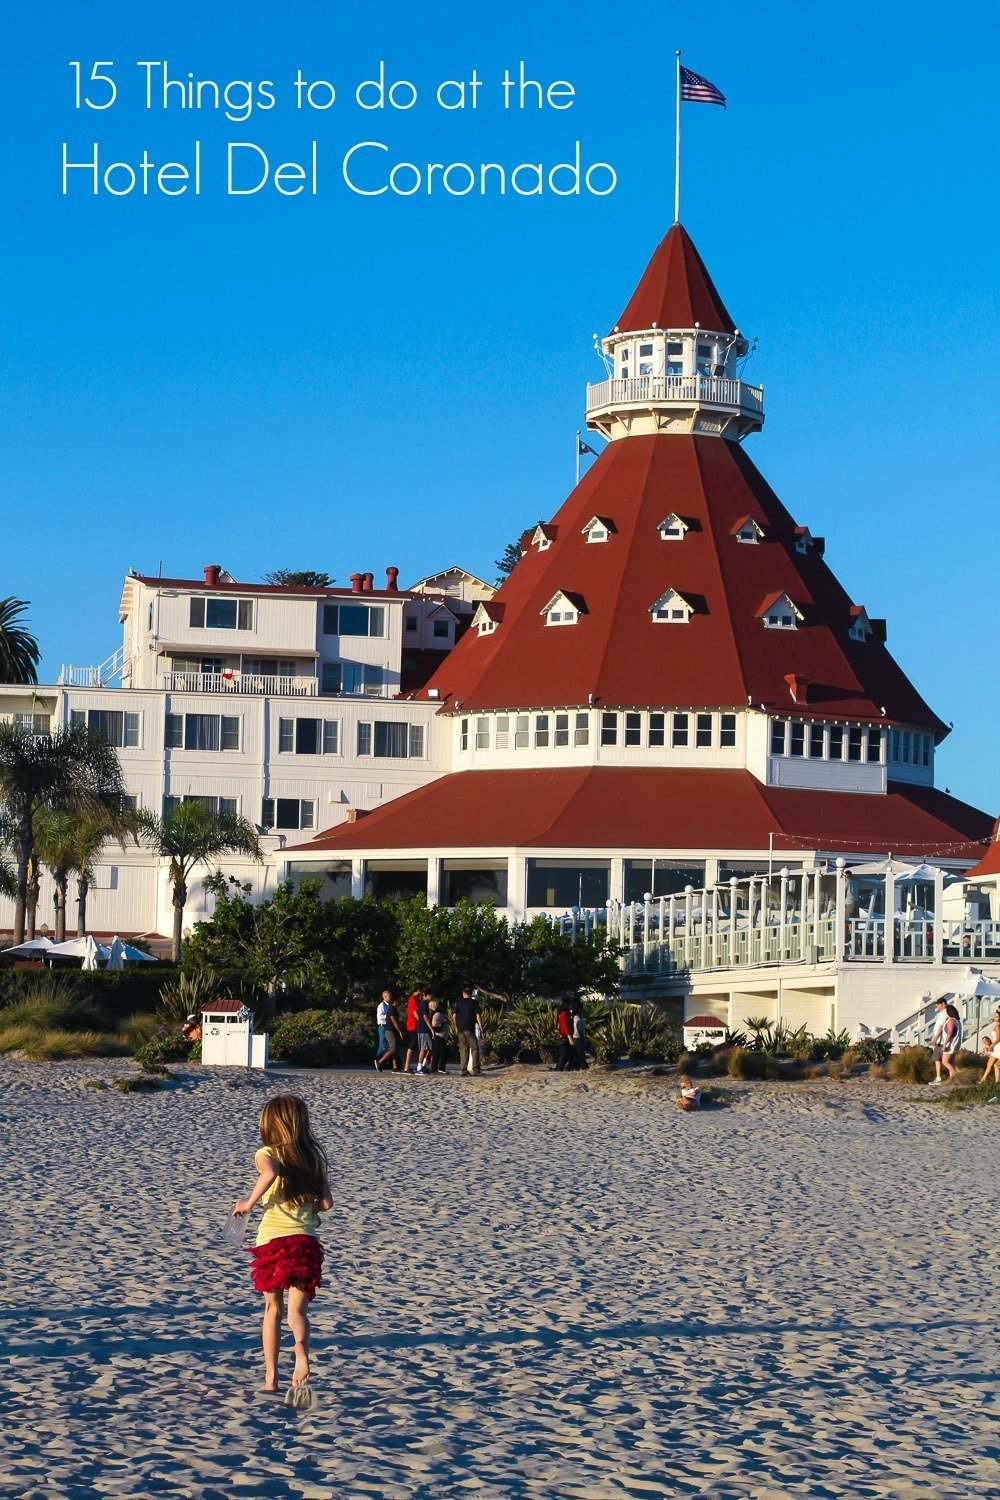 15 Things To Do At The Hotel Del Coronado